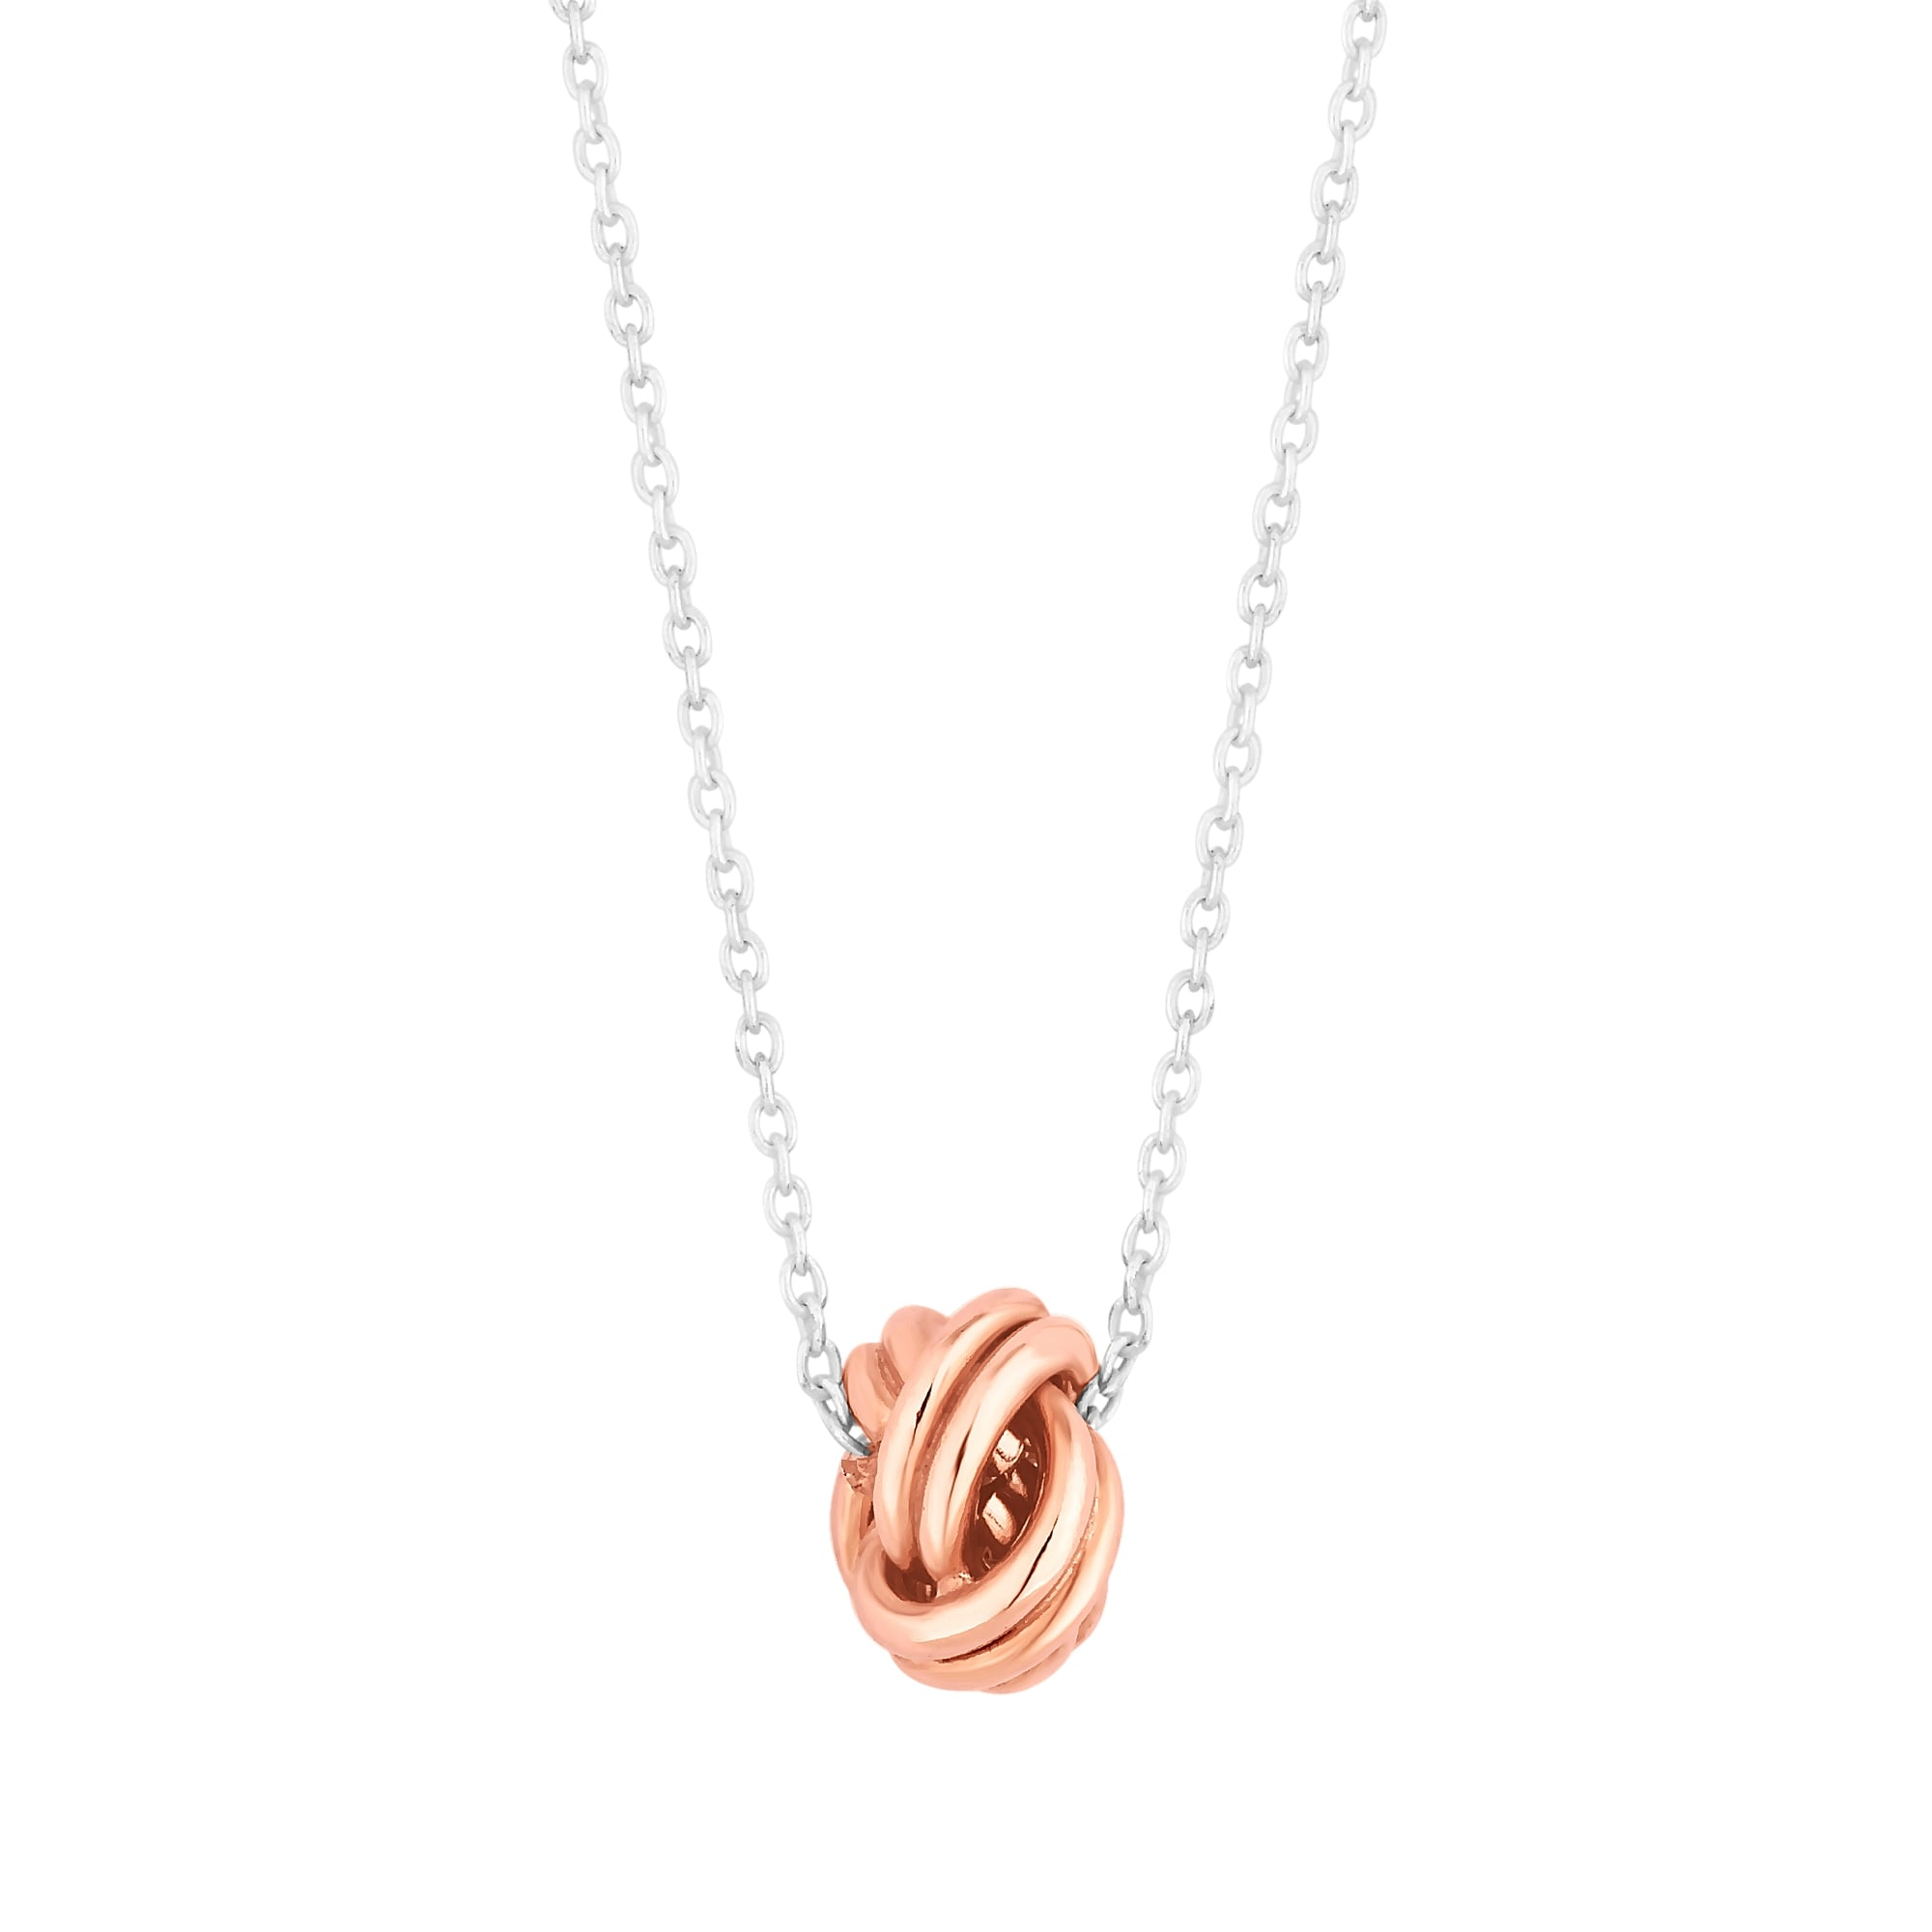 wiz knot jewelry necklaces en necklace